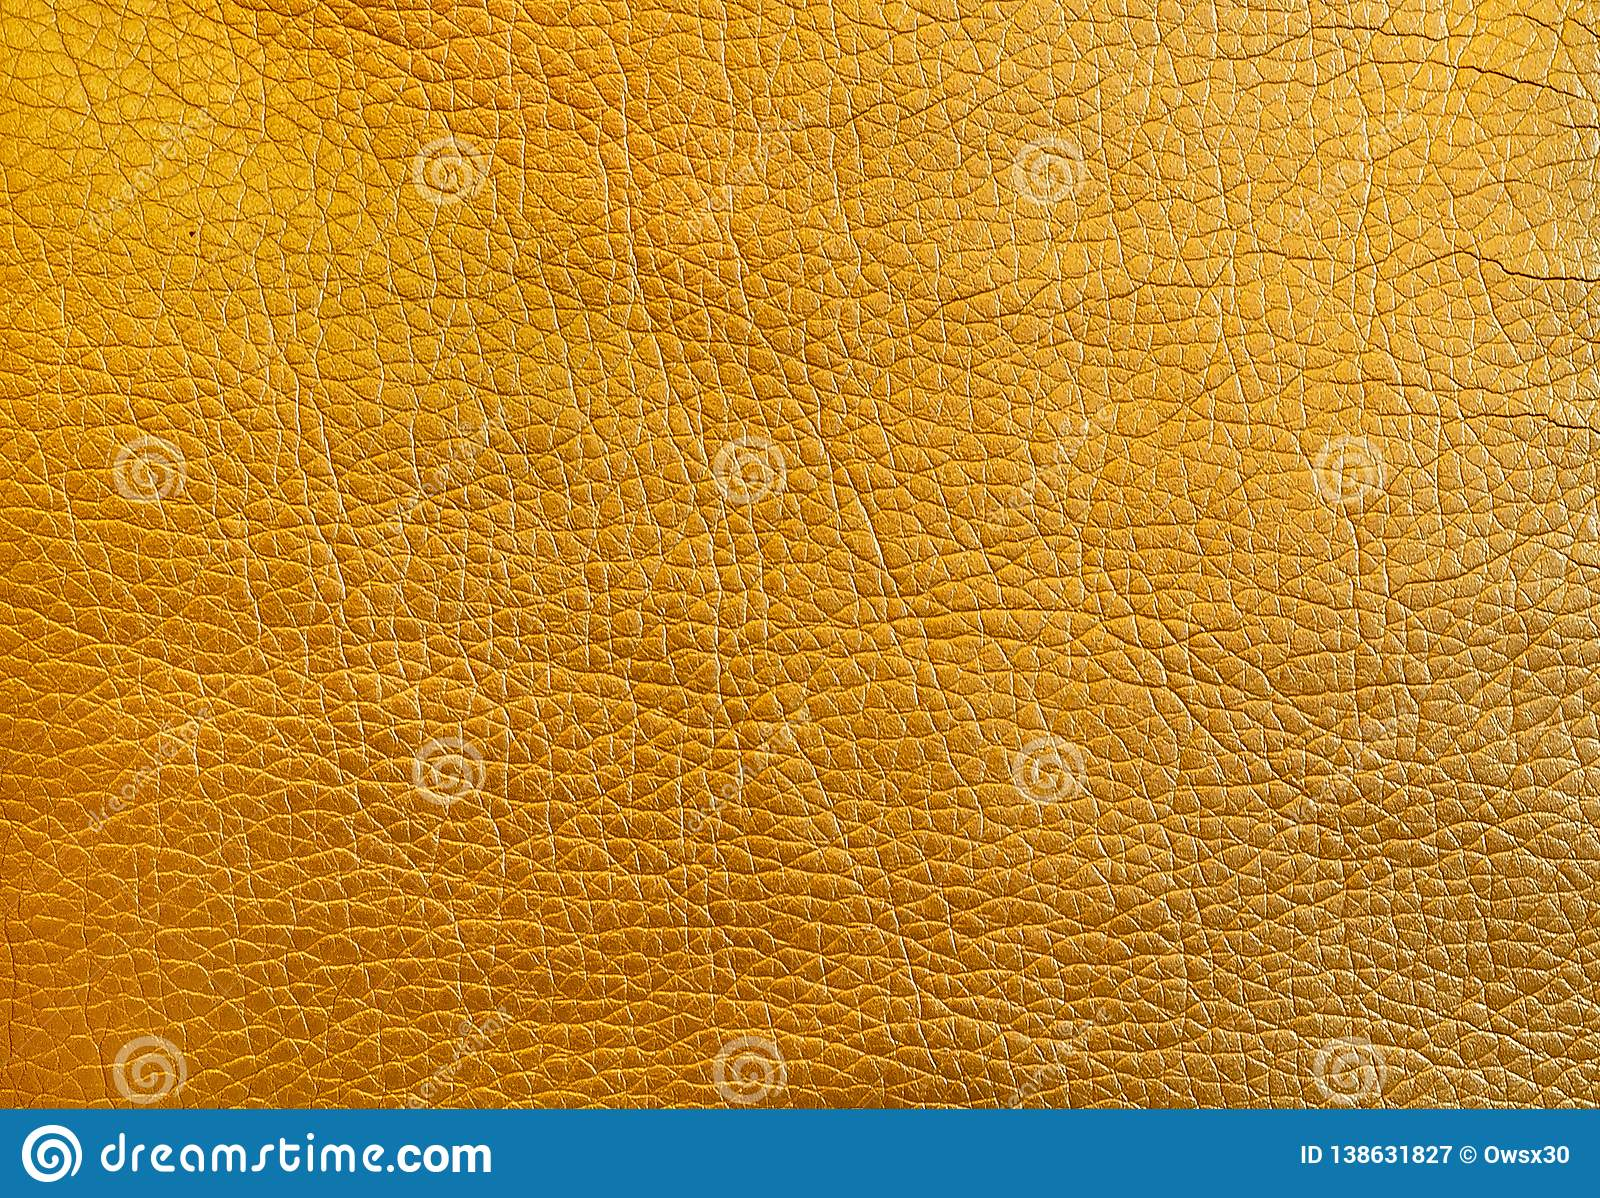 Texture metallic gold leather as a background. close up